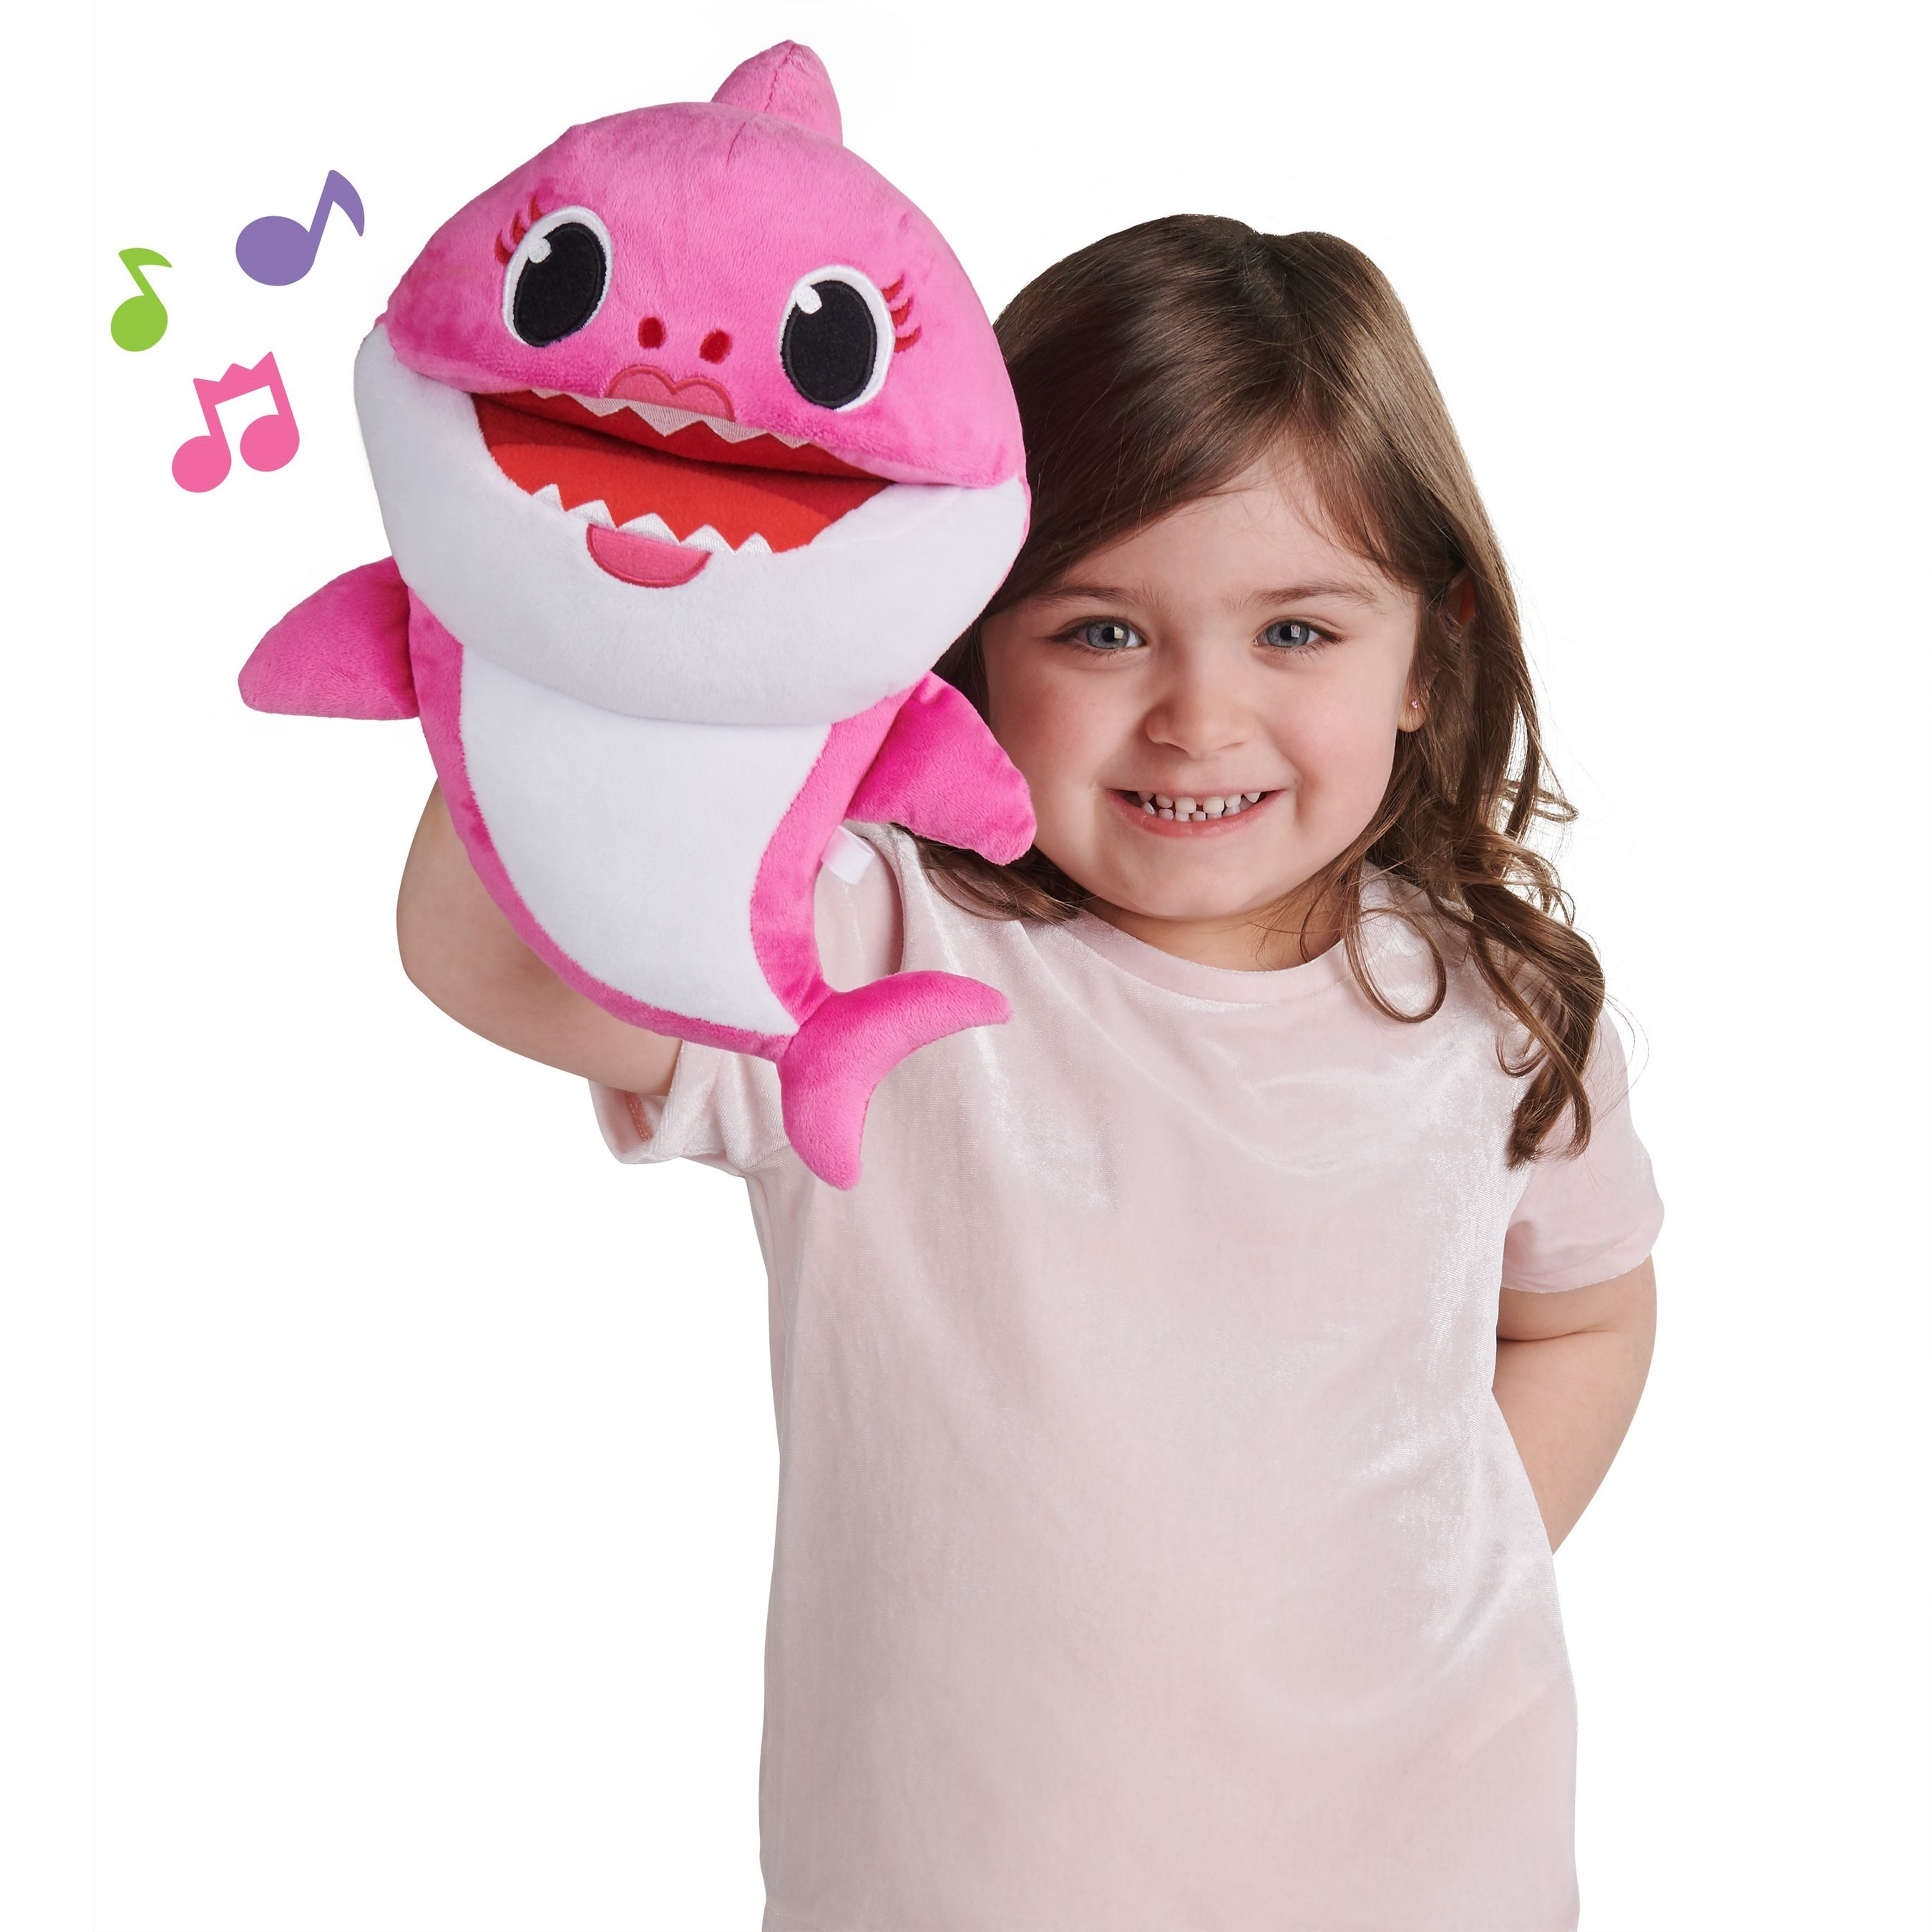 WowWee Introduces New Pinkfong Baby Shark Song Puppets with Tempo Control,  the First-Ever Baby Shark Fingerlings, and more for Holiday 2019